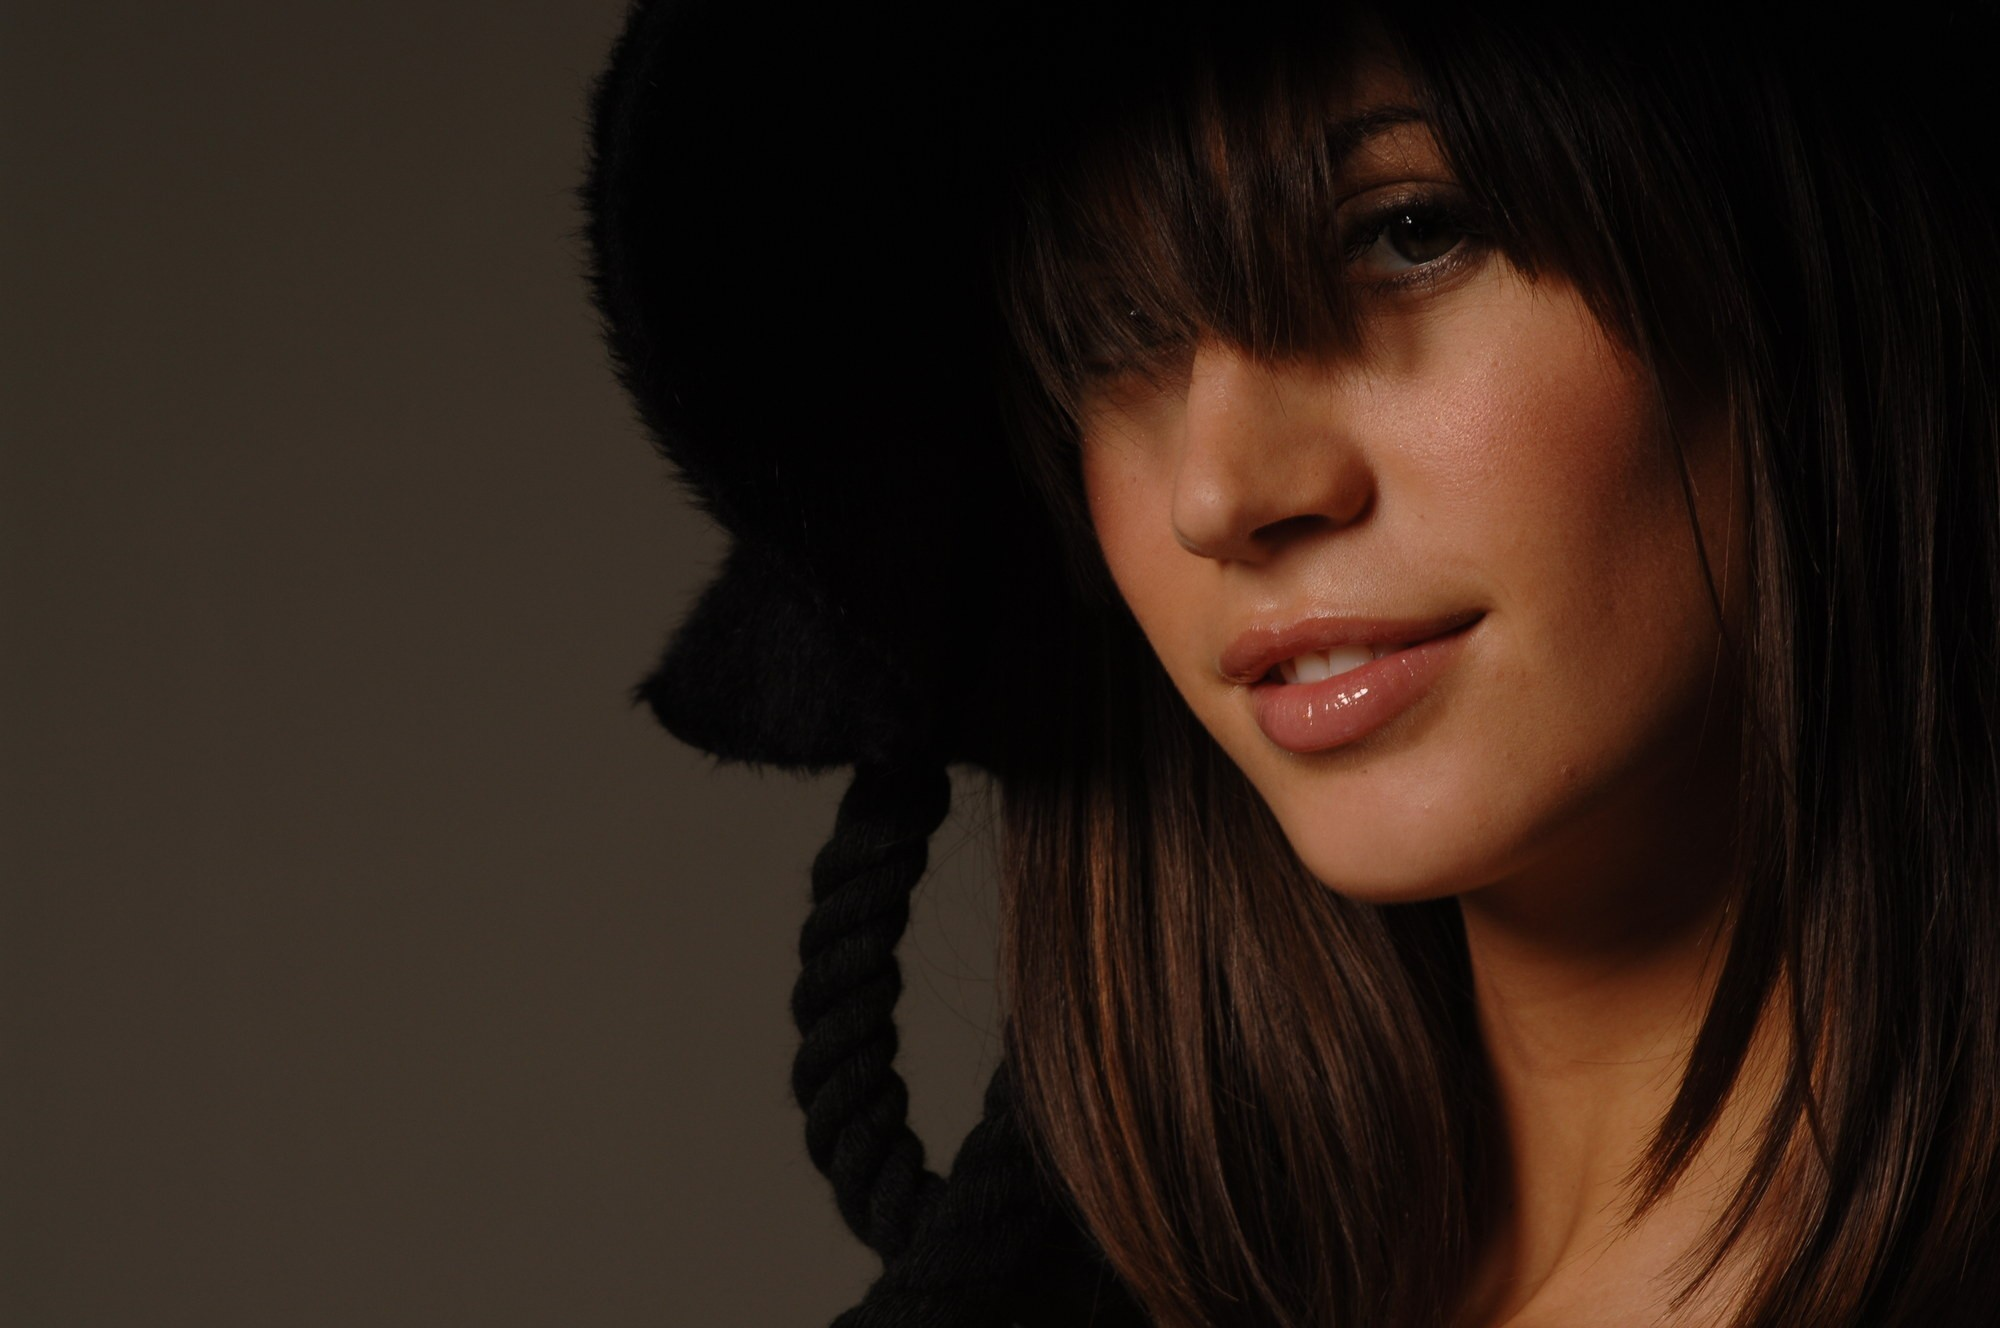 brunettes woman close-up Italian HD Wallpaper